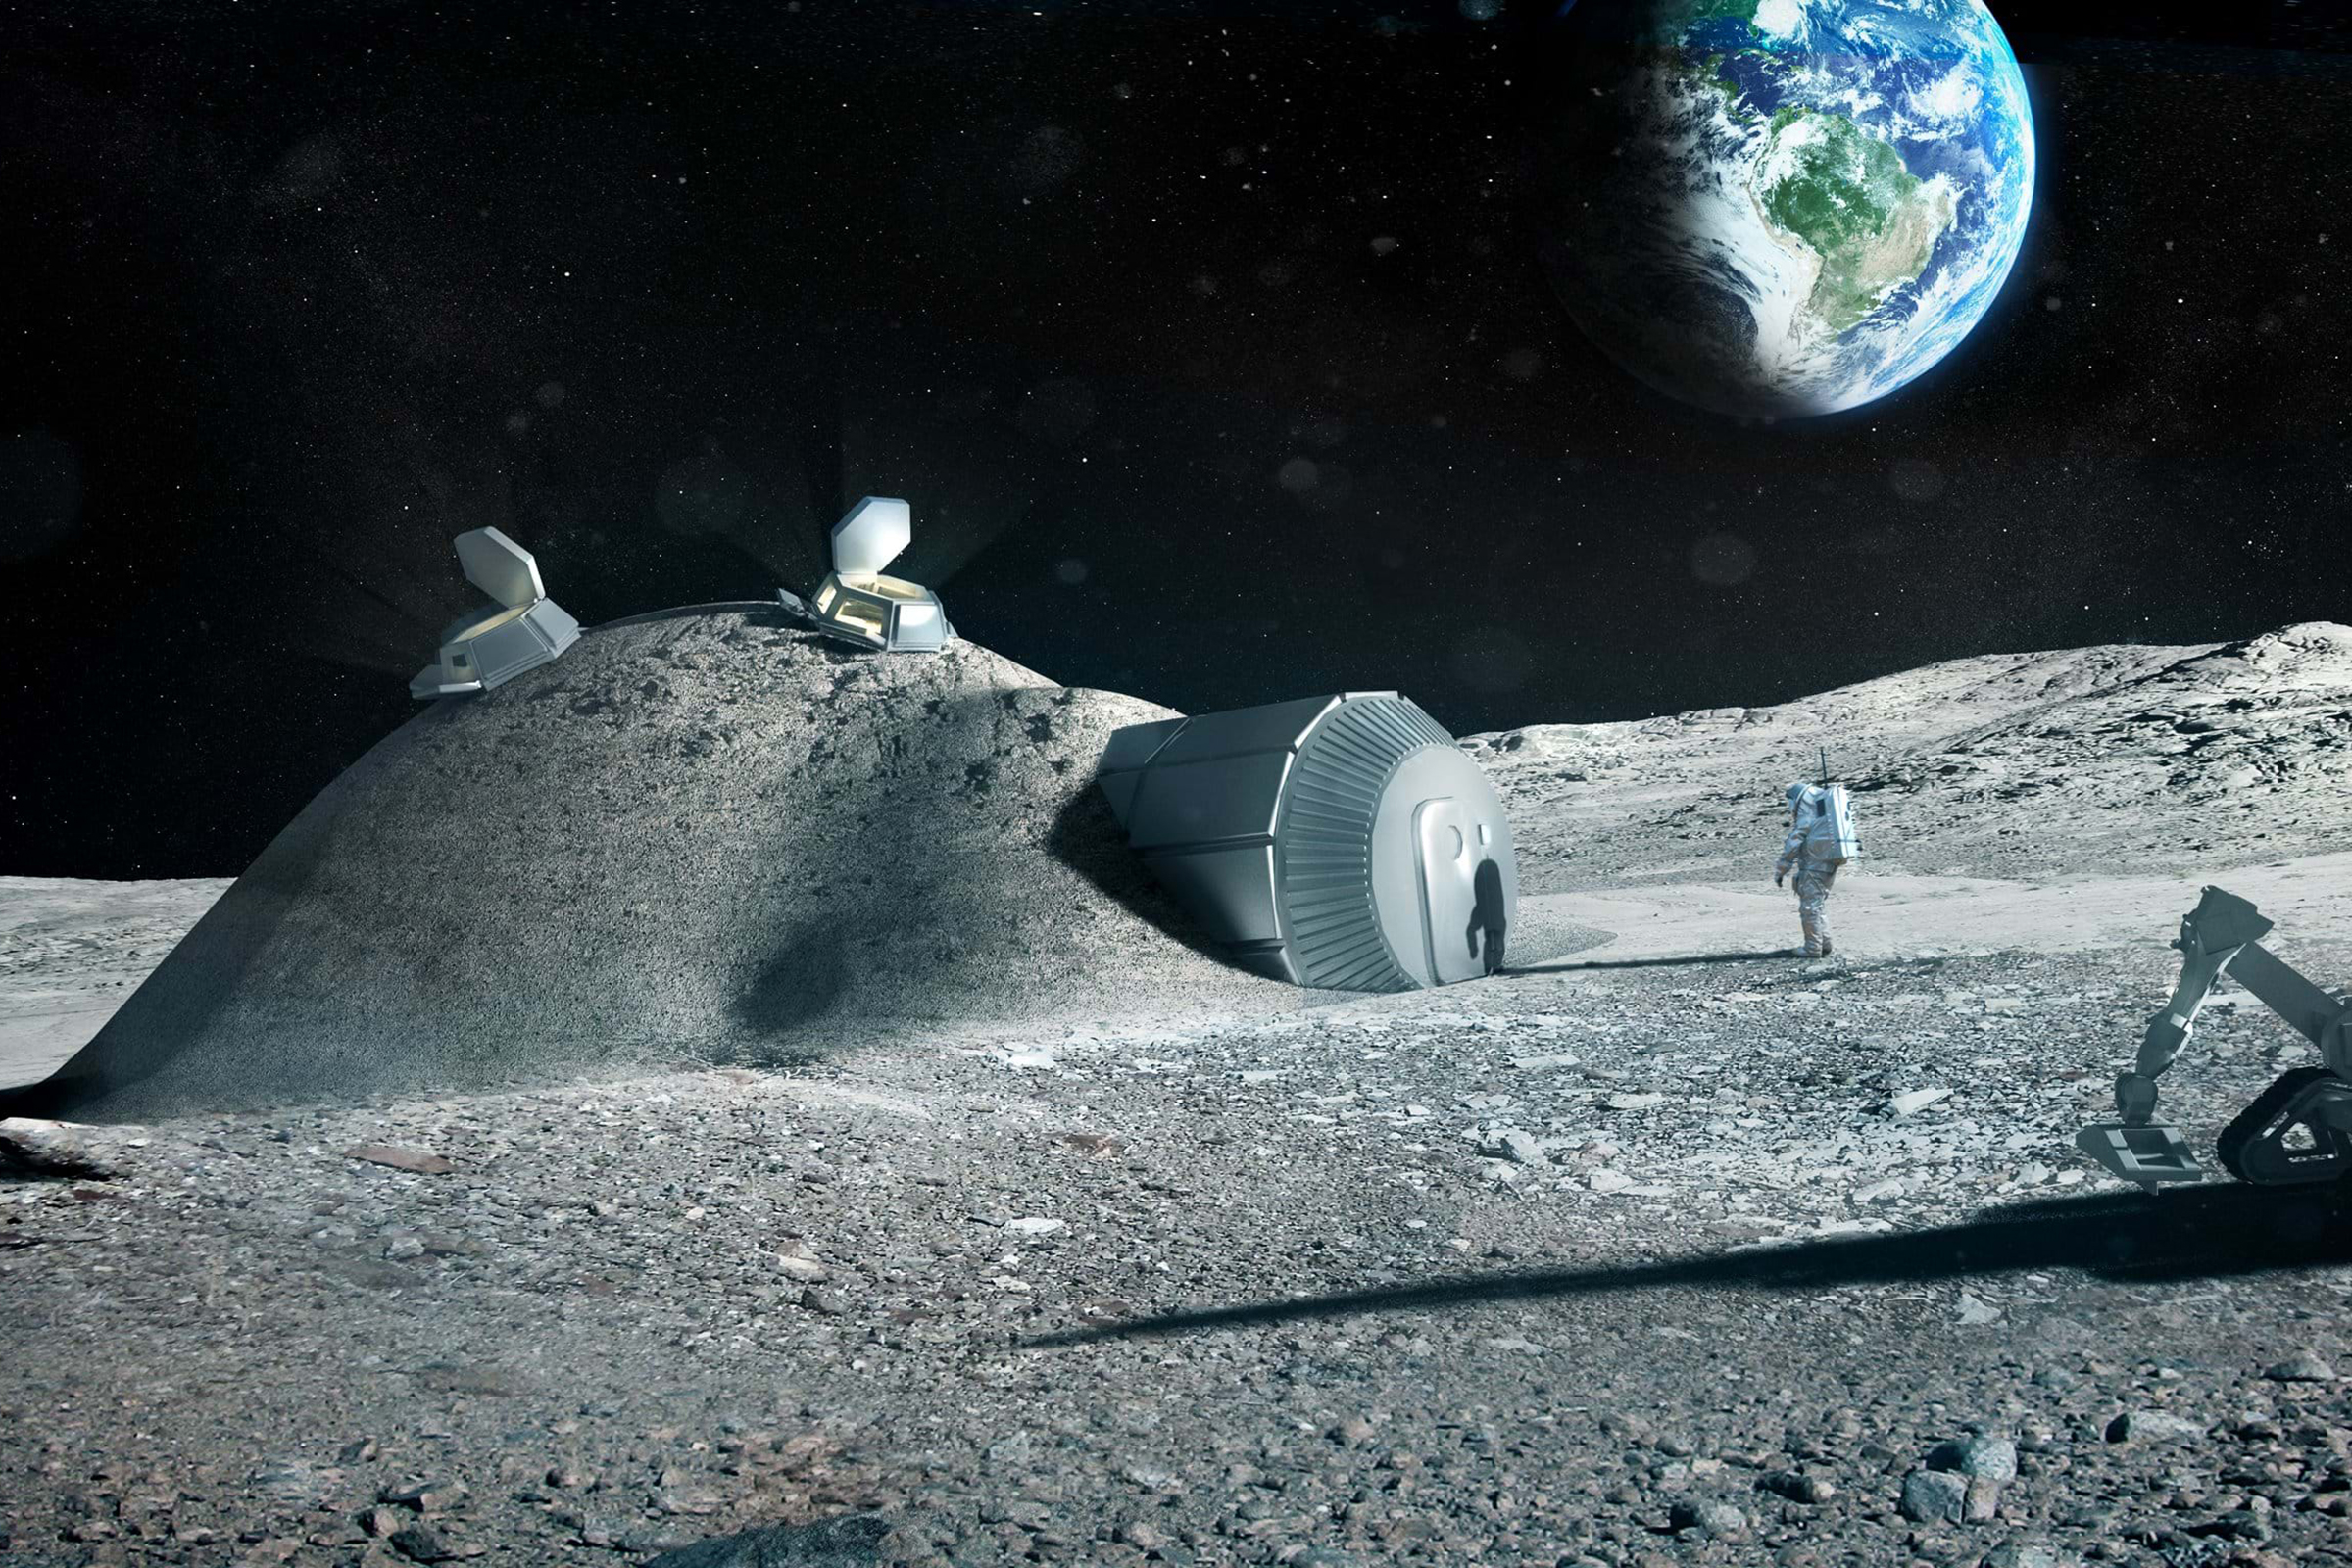 Computer generated image of the Lunar Habitation concept - a collaboration between Foster + Partners and the European Space Agency.